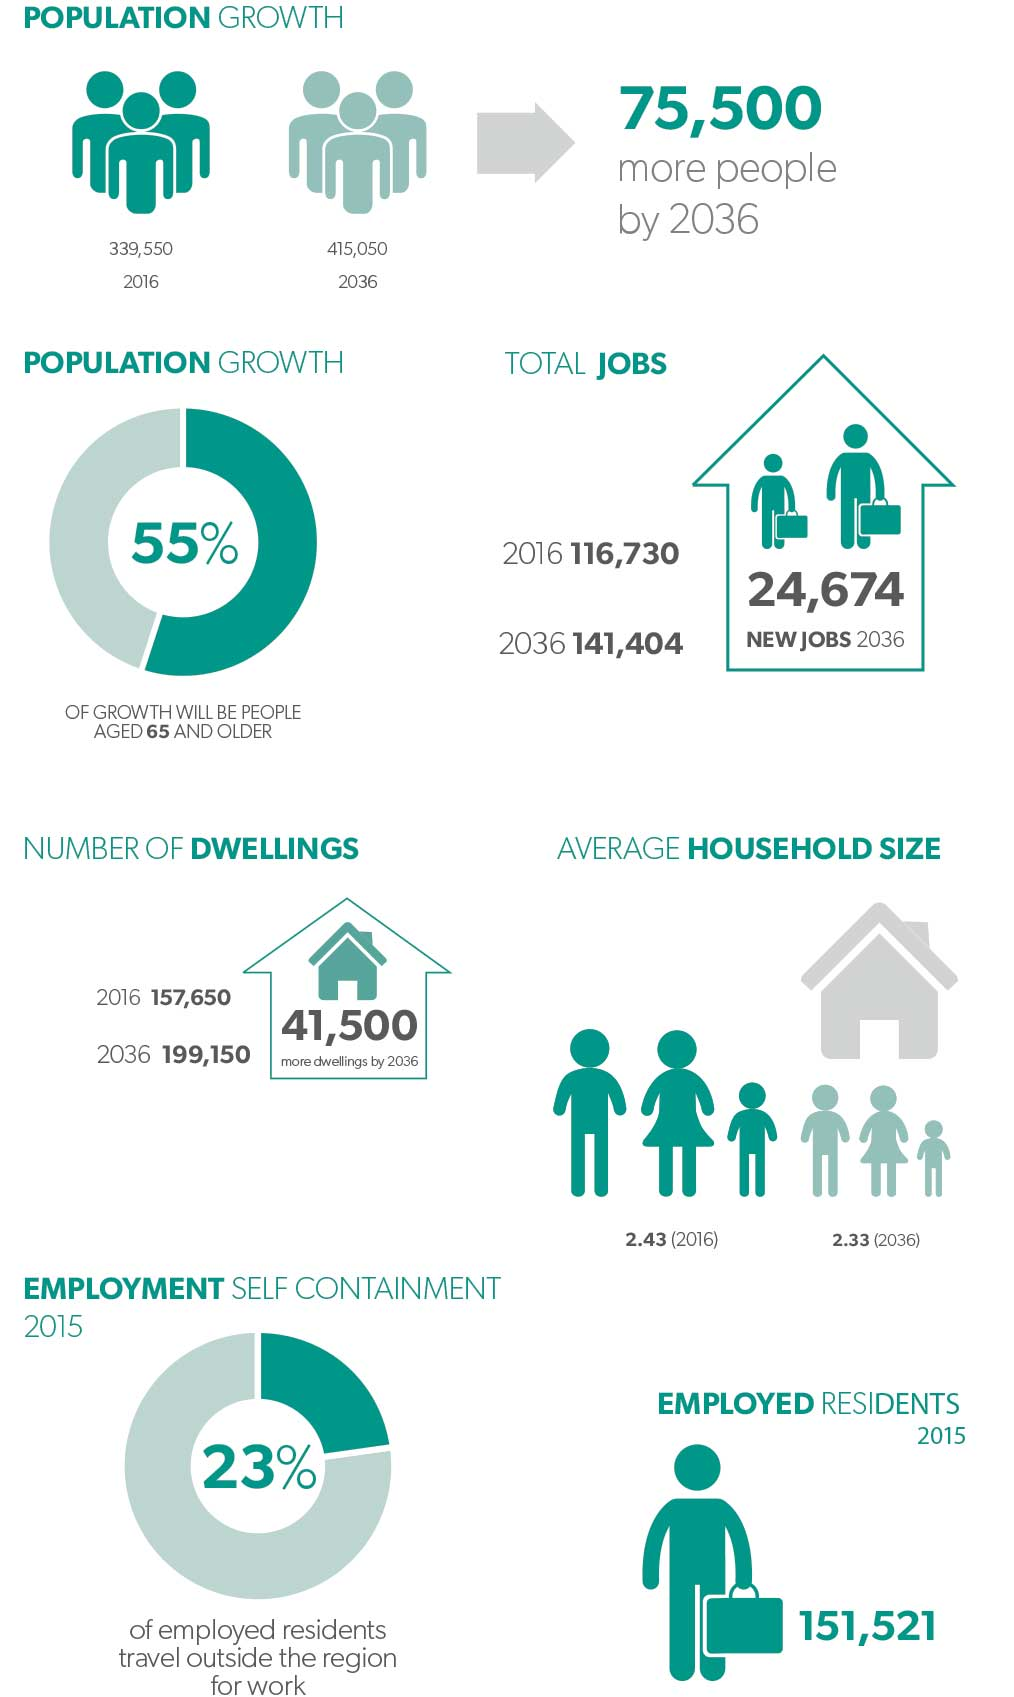 Series of infographics showing population growth, total jobs, number of dwellings, population size, employed residents and employment self containment in Central Coast region